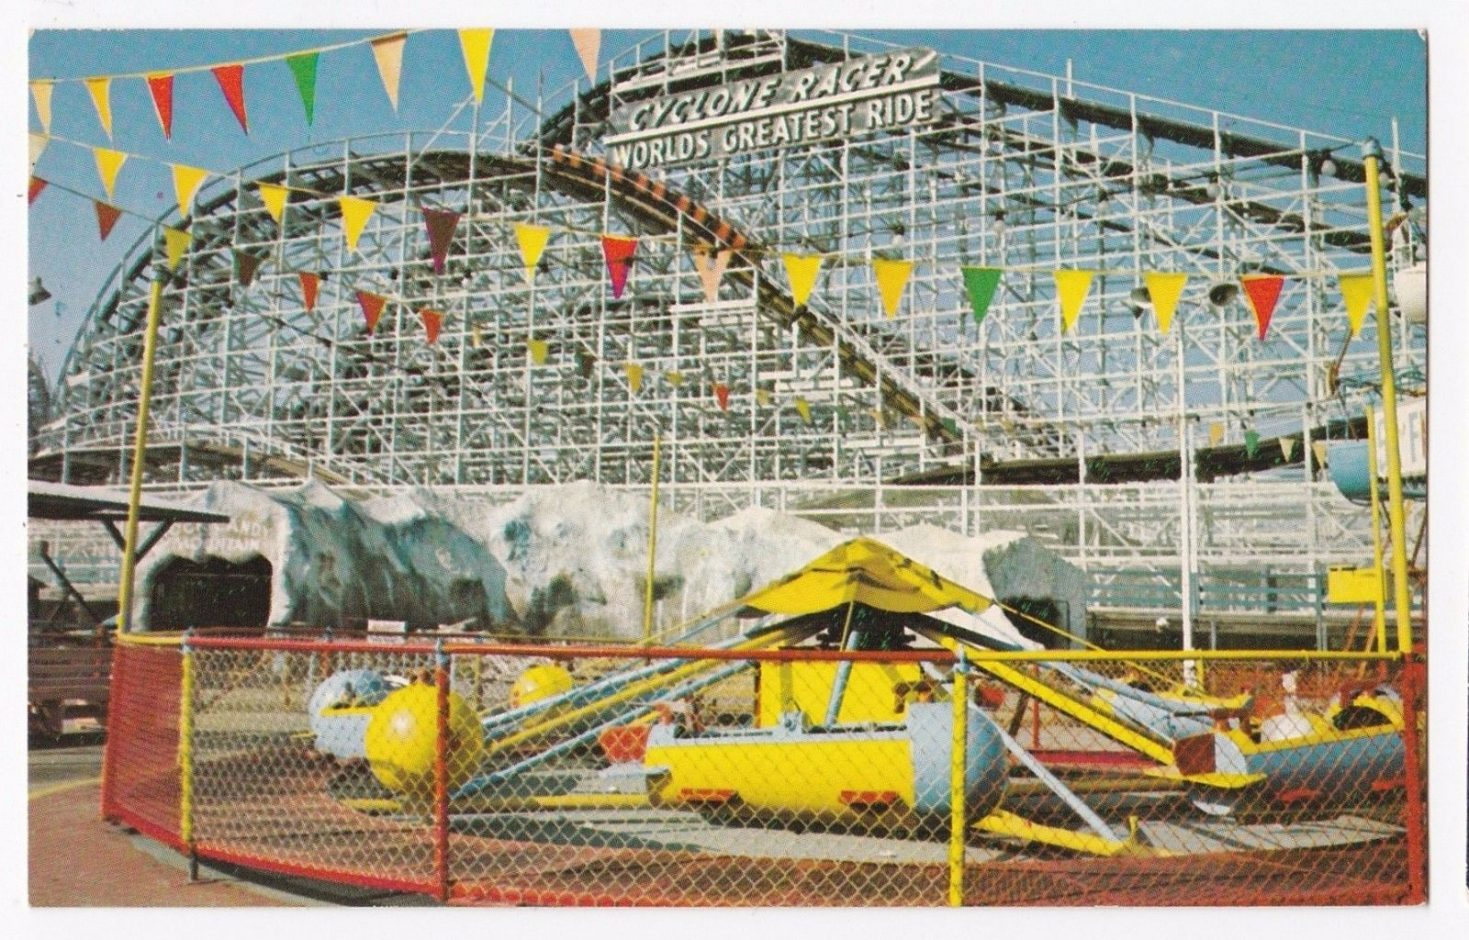 roller-coaster-cyclone-racer-worlds-greatest-ride-long-beach-ca-vintage-pc_192094020252